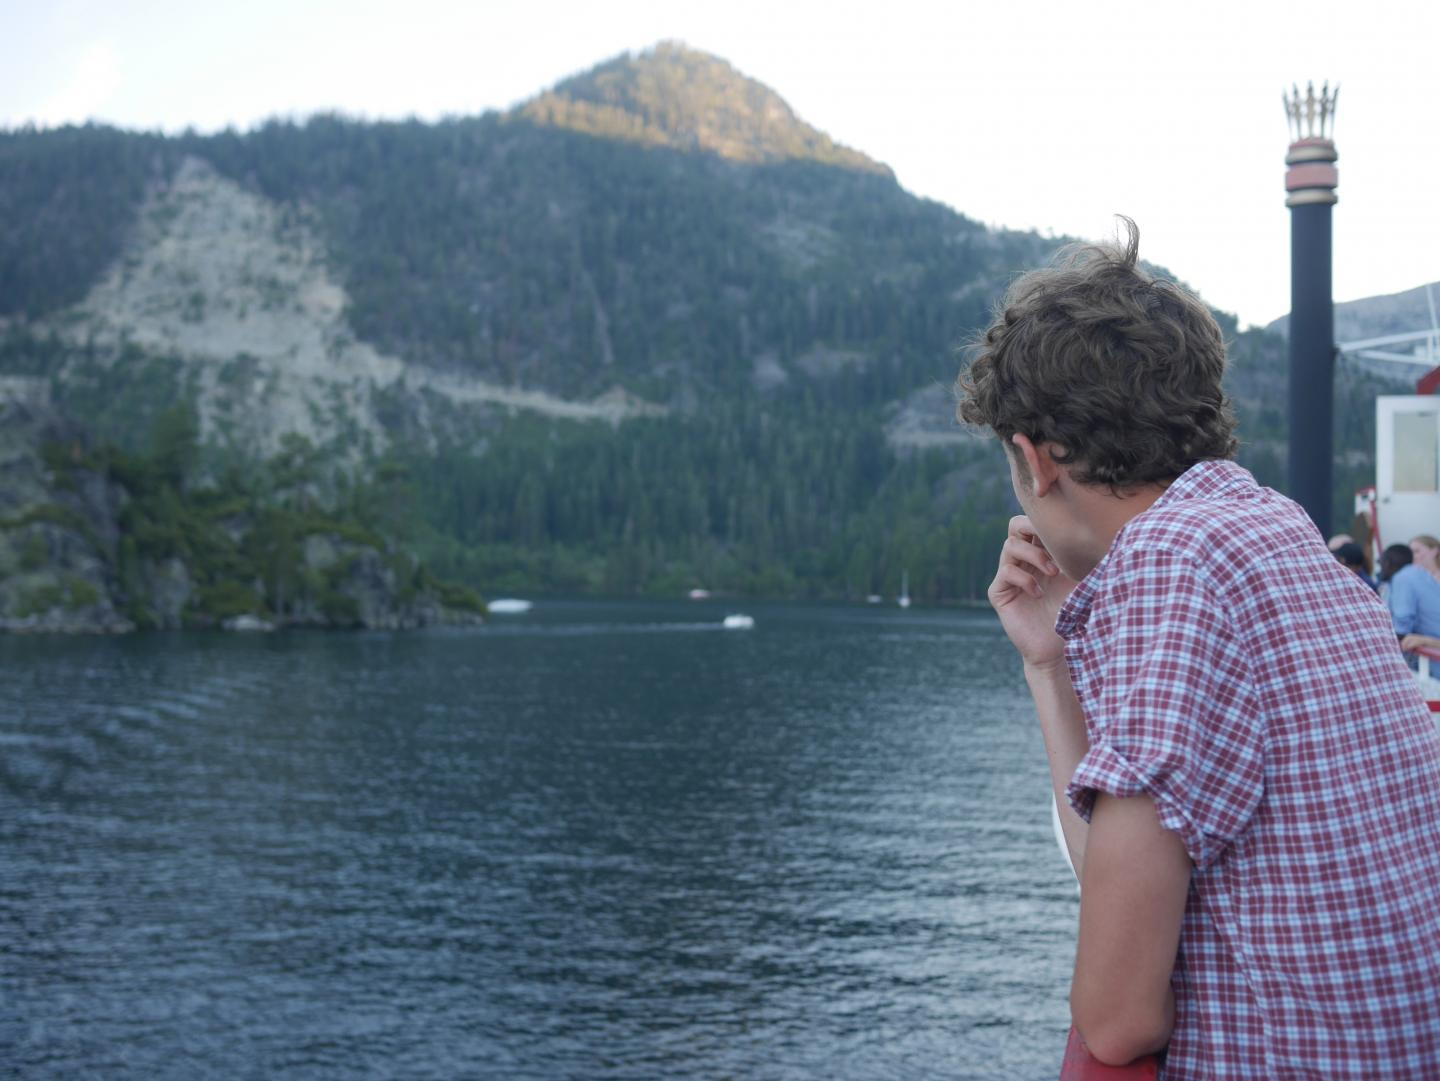 A teen gazes out at a lake during their summer adventure tour of North America.